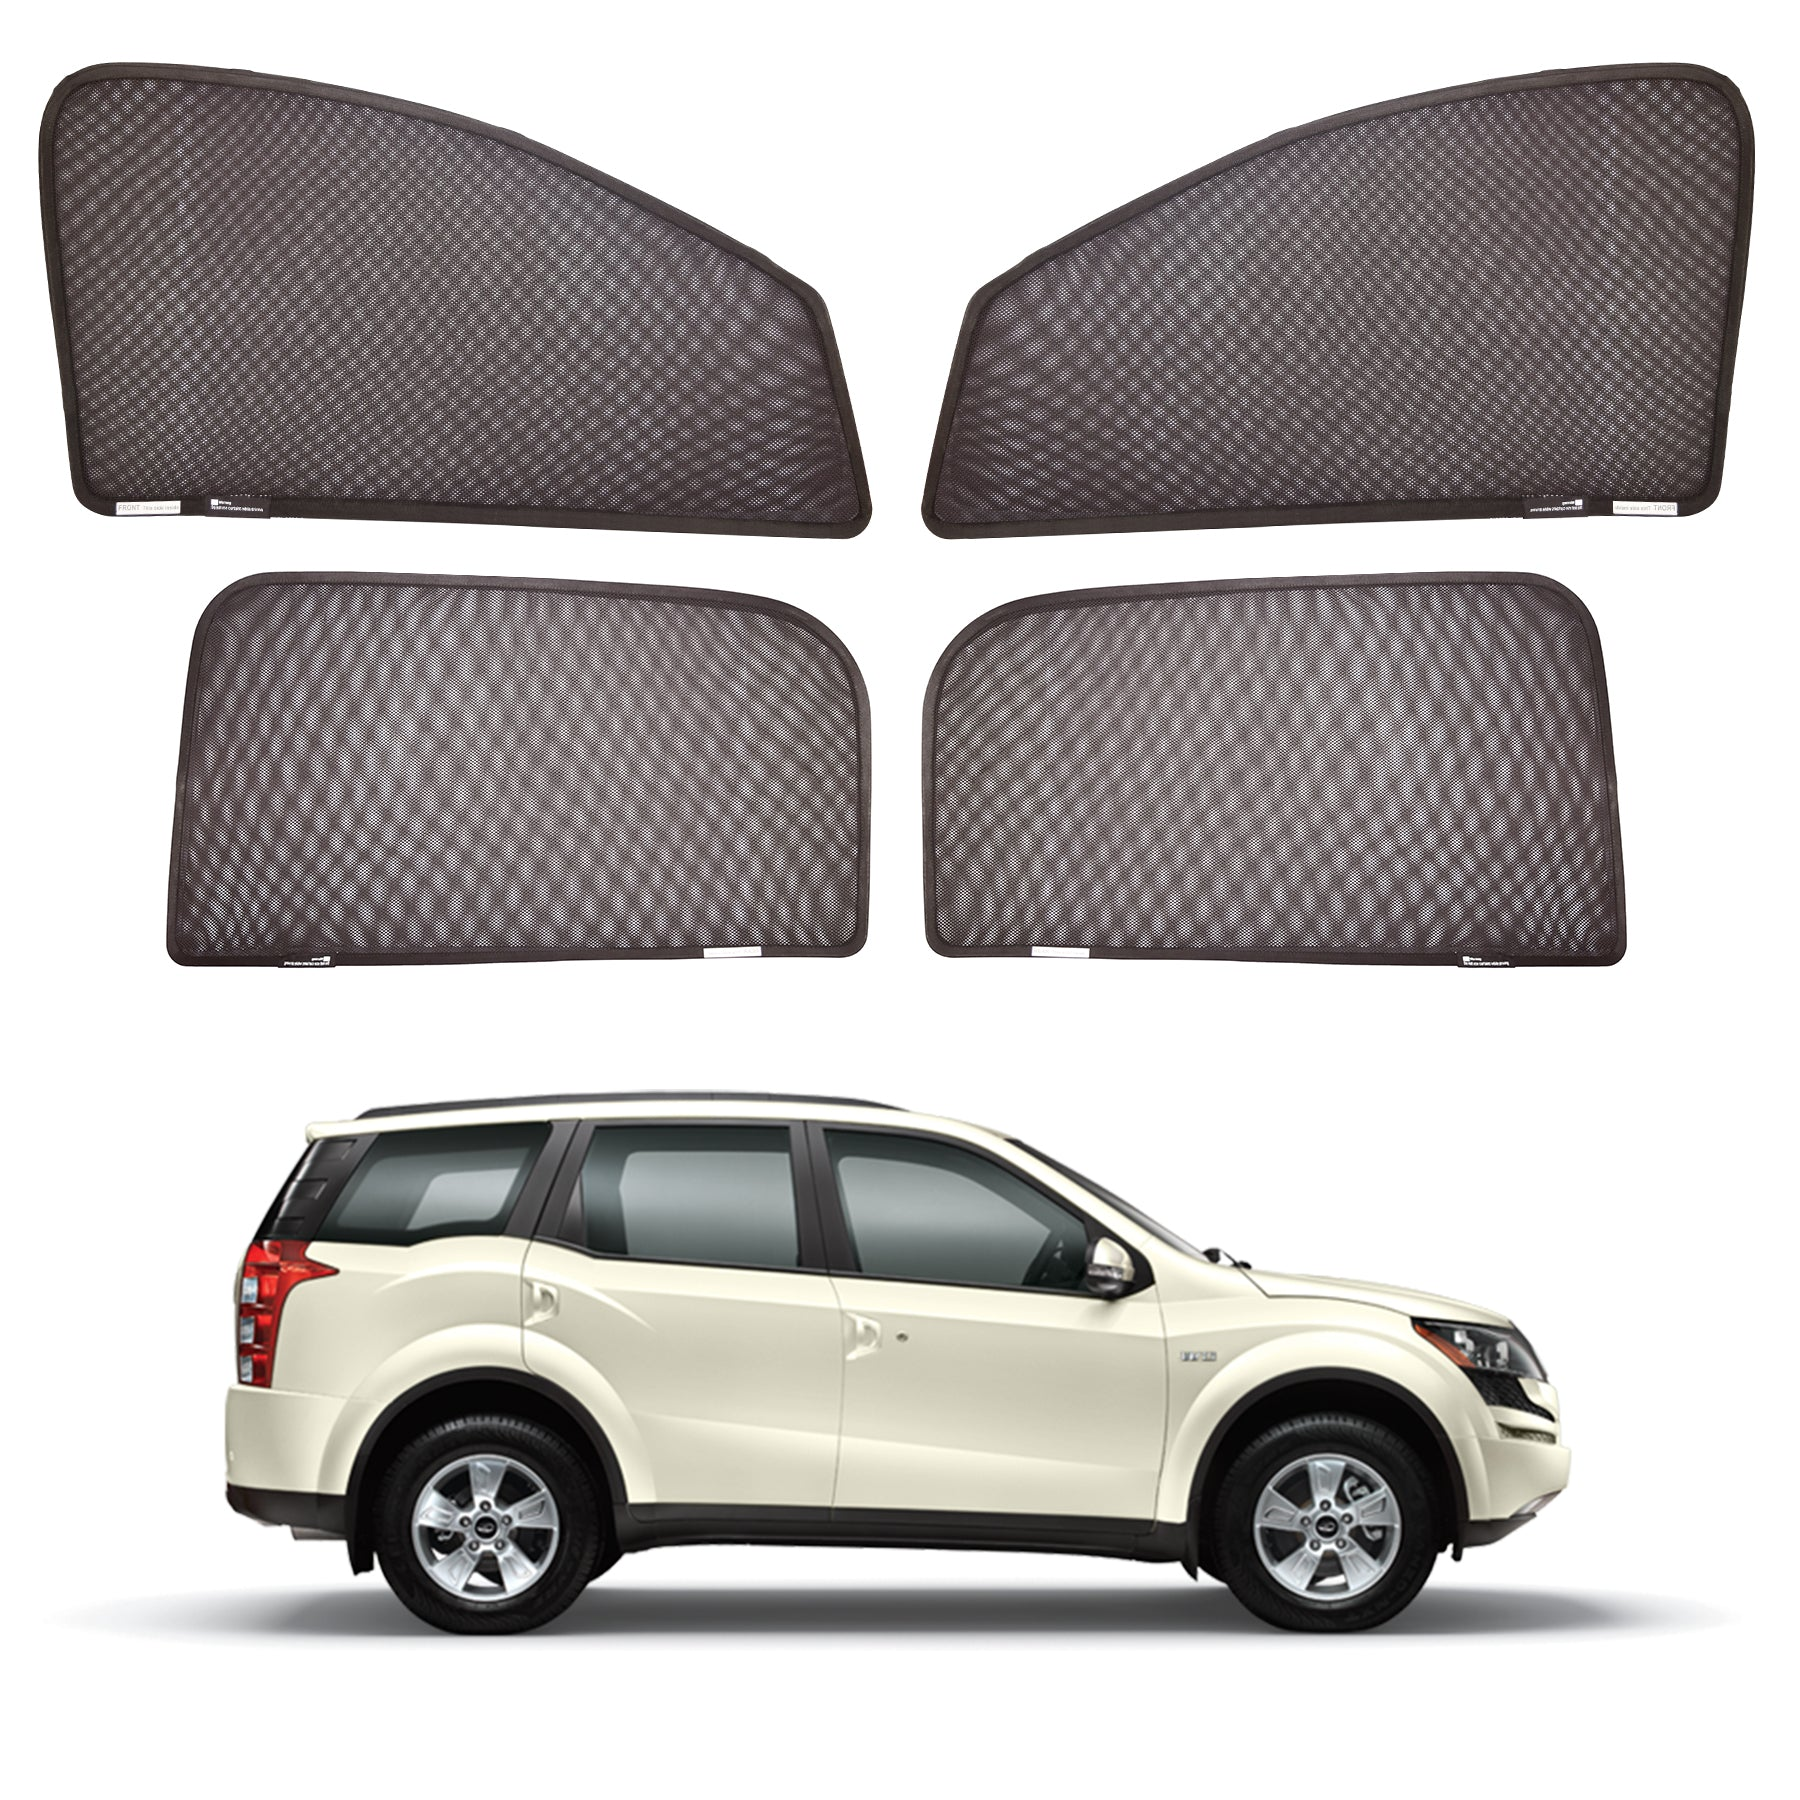 XUV magnetic sunshades set of 4